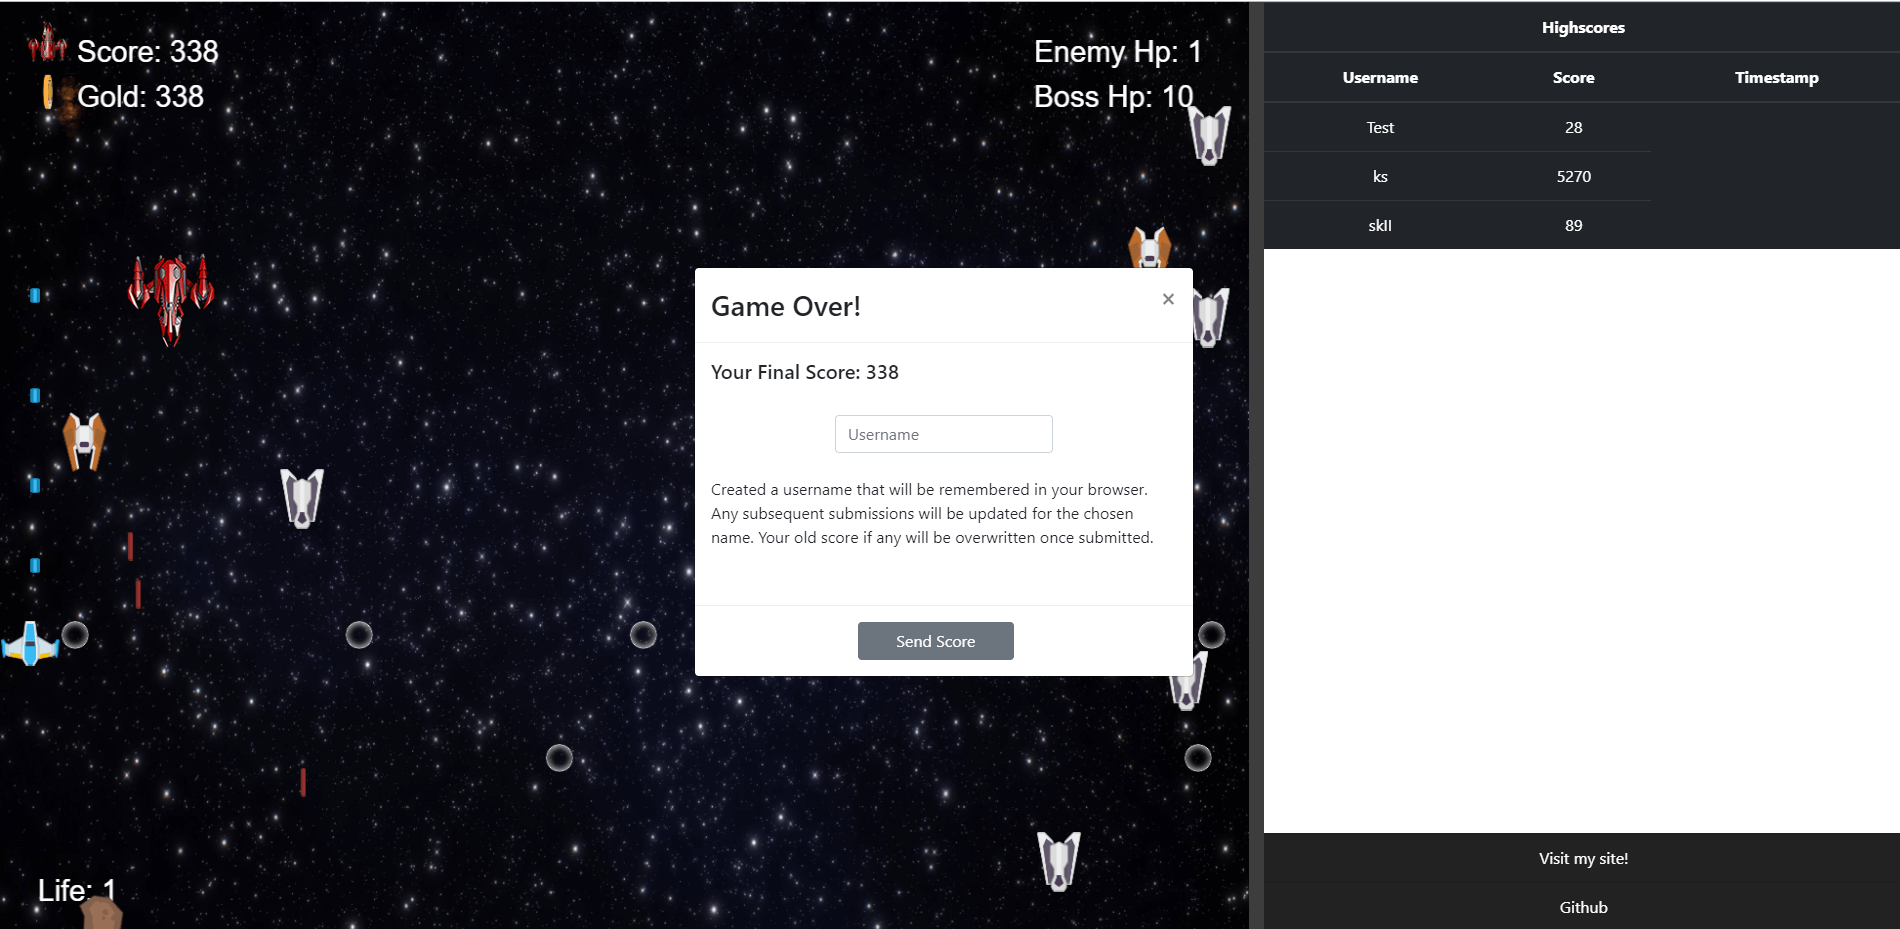 spaceout_highscores